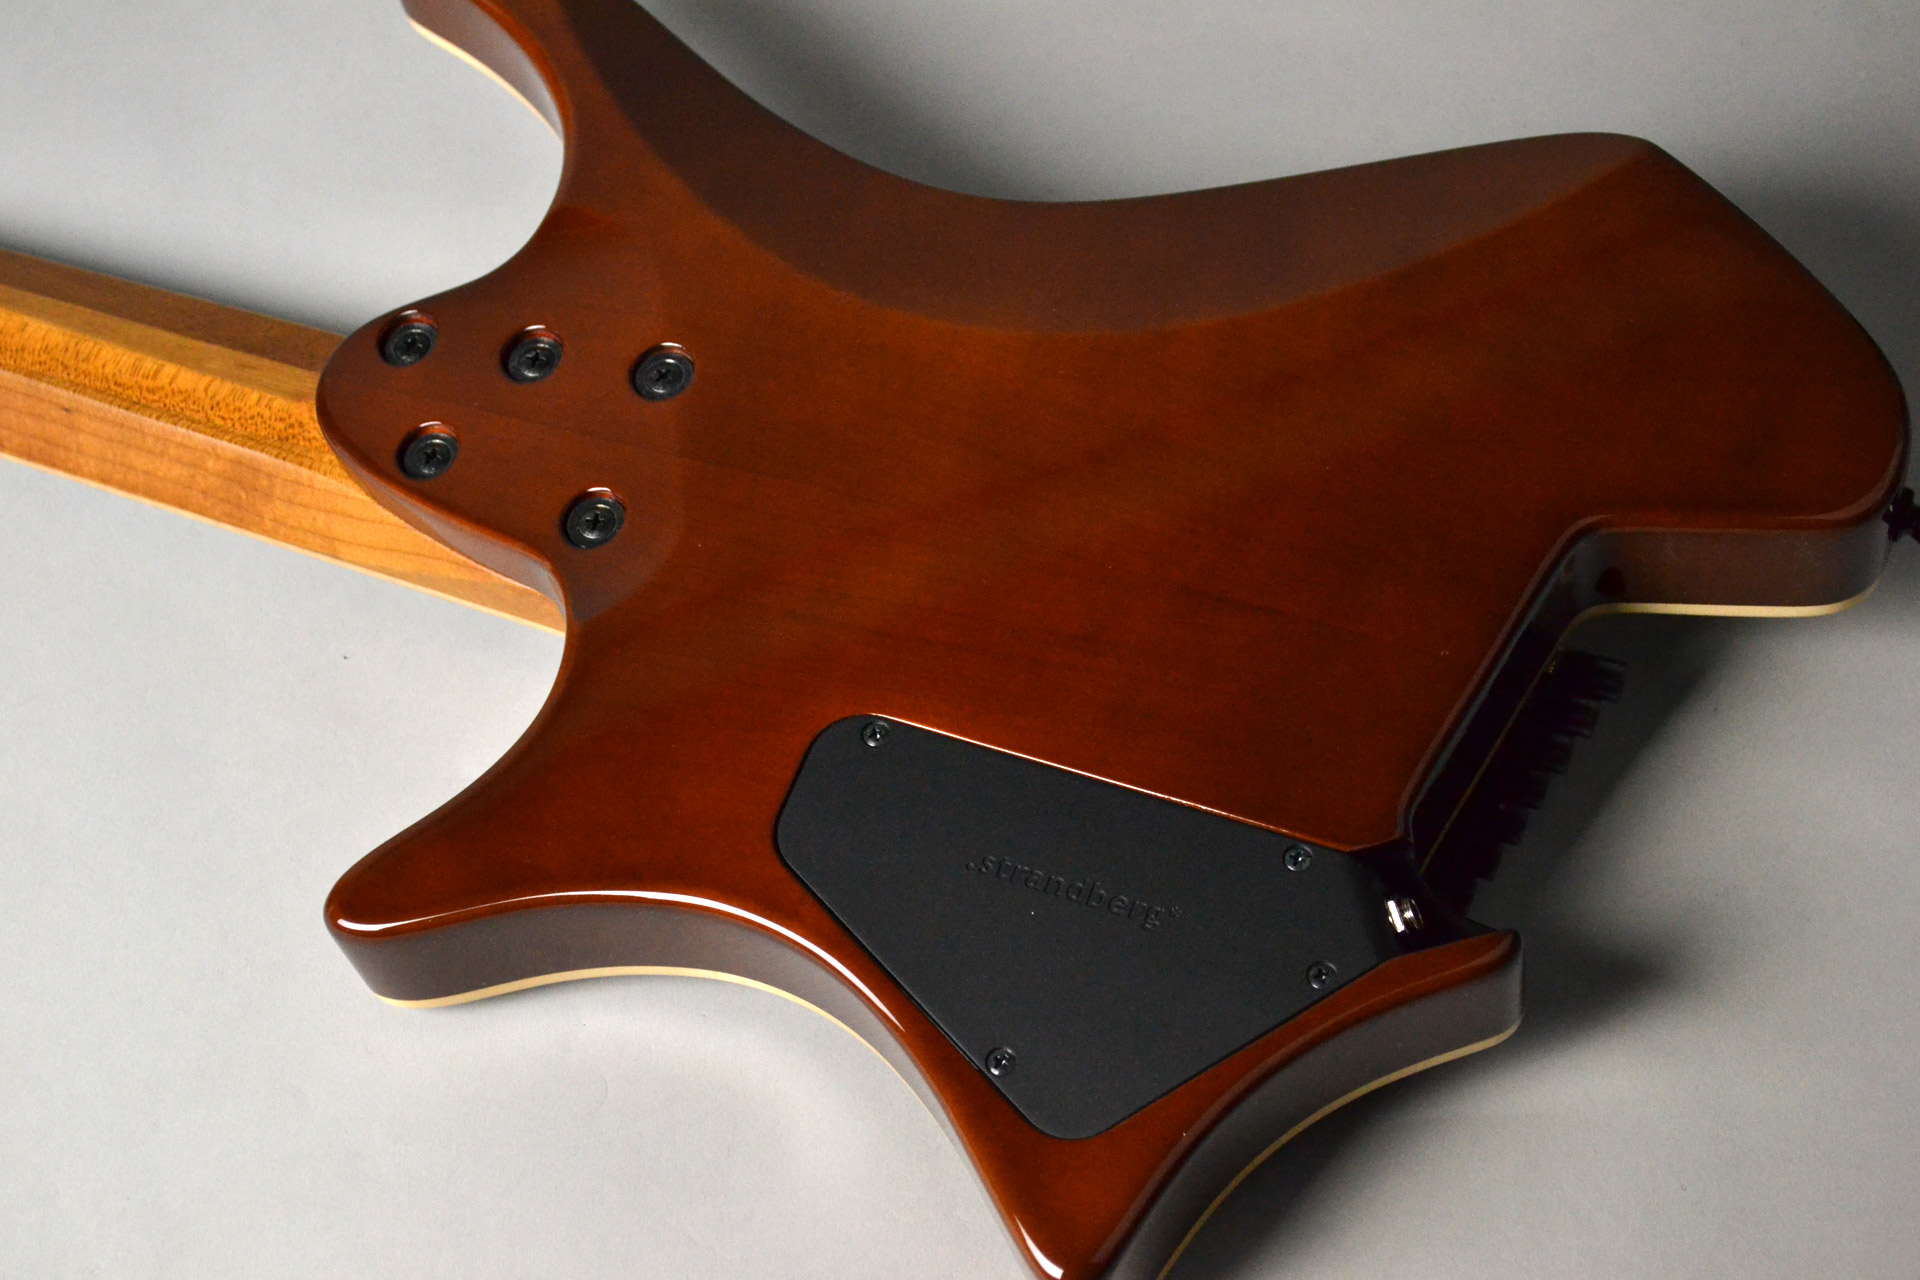 Boden J7 Standard Rosewood Roasted Maple Neckのボディバック-アップ画像